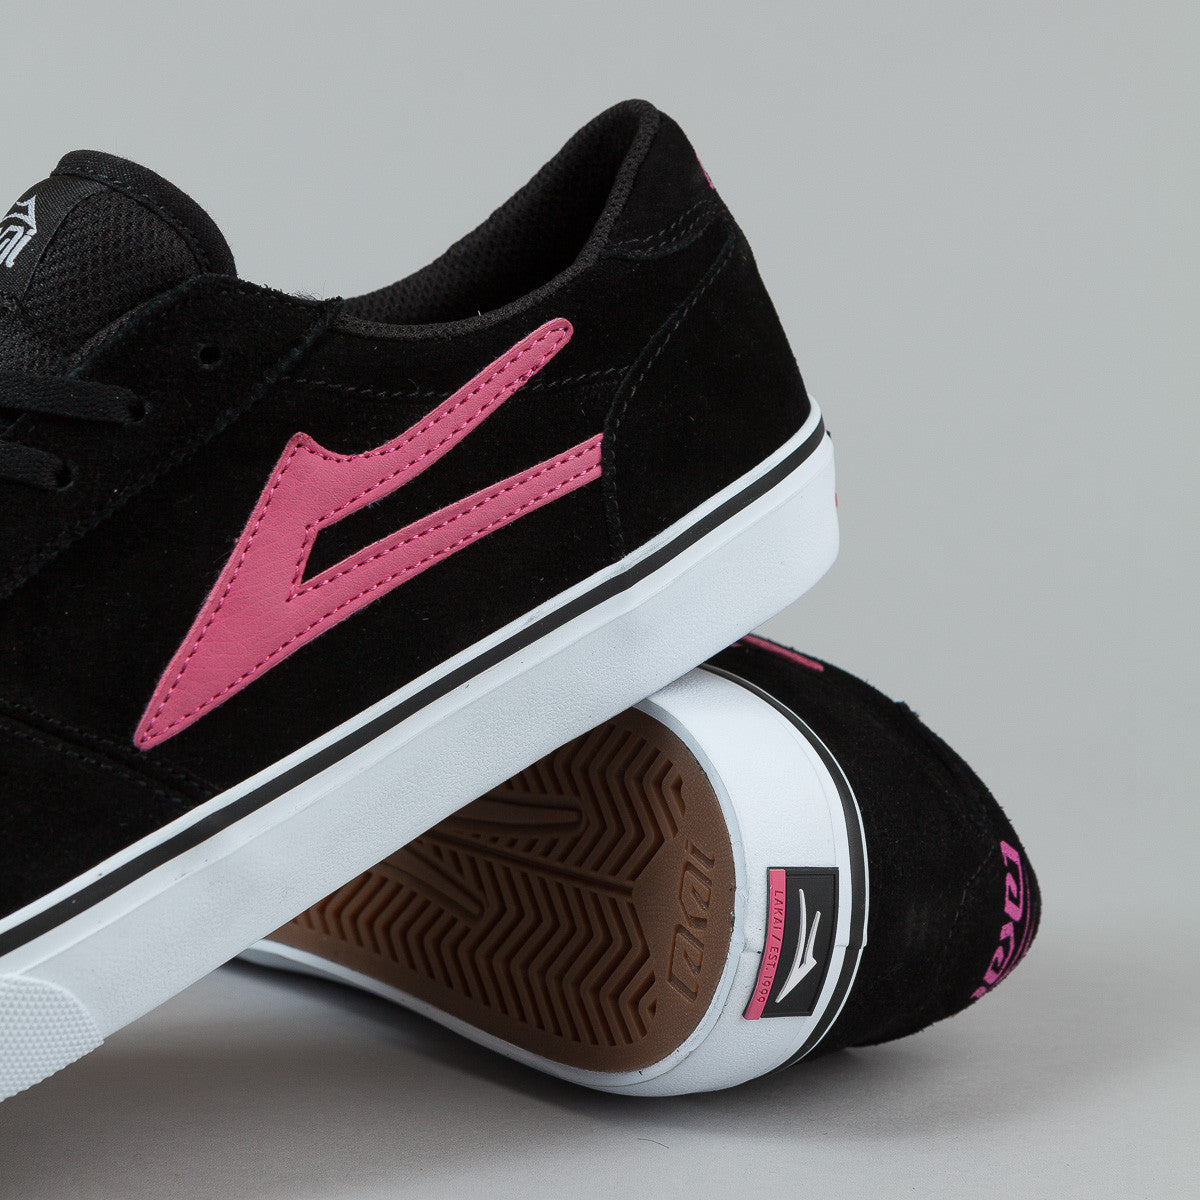 Lakai Anchor Manchester McCrank Shoes - Black / Pink Suede